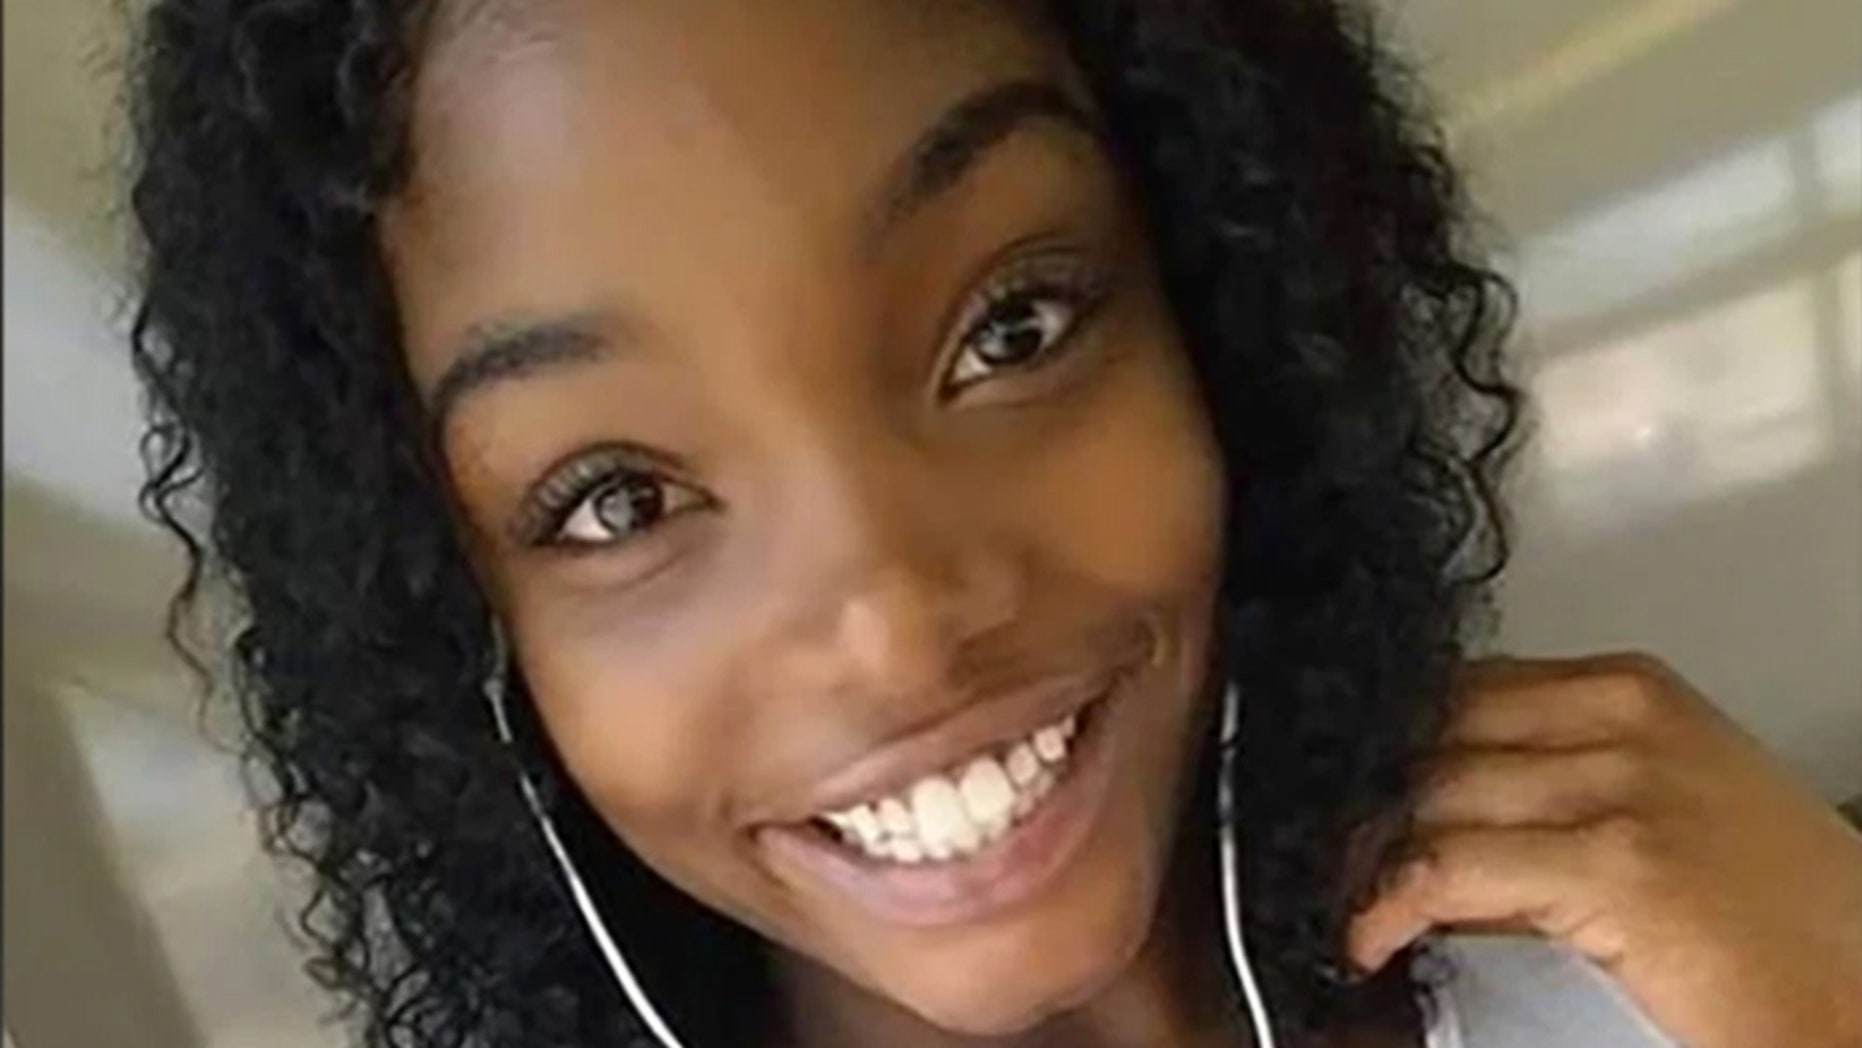 Mariah Michelle Logan, 23, died early Sunday in Miami after falling out of a rental car, police and her boyfriend say.